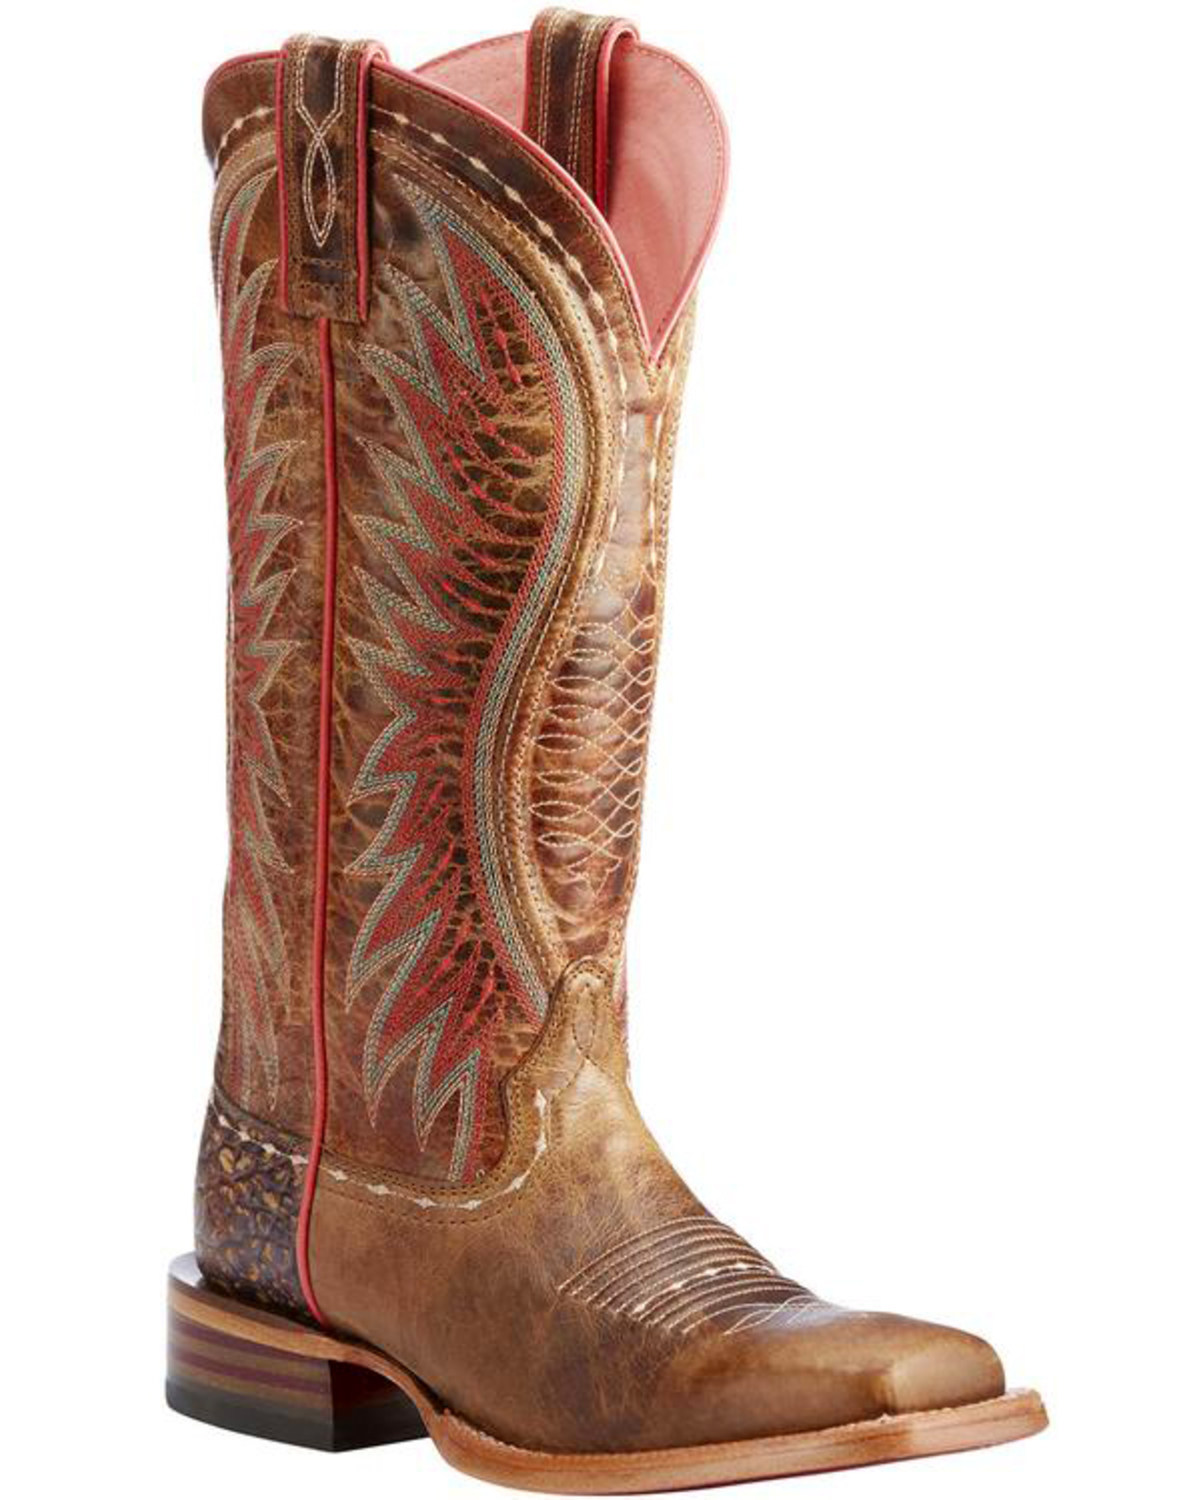 Discount Ariat Boots For Women